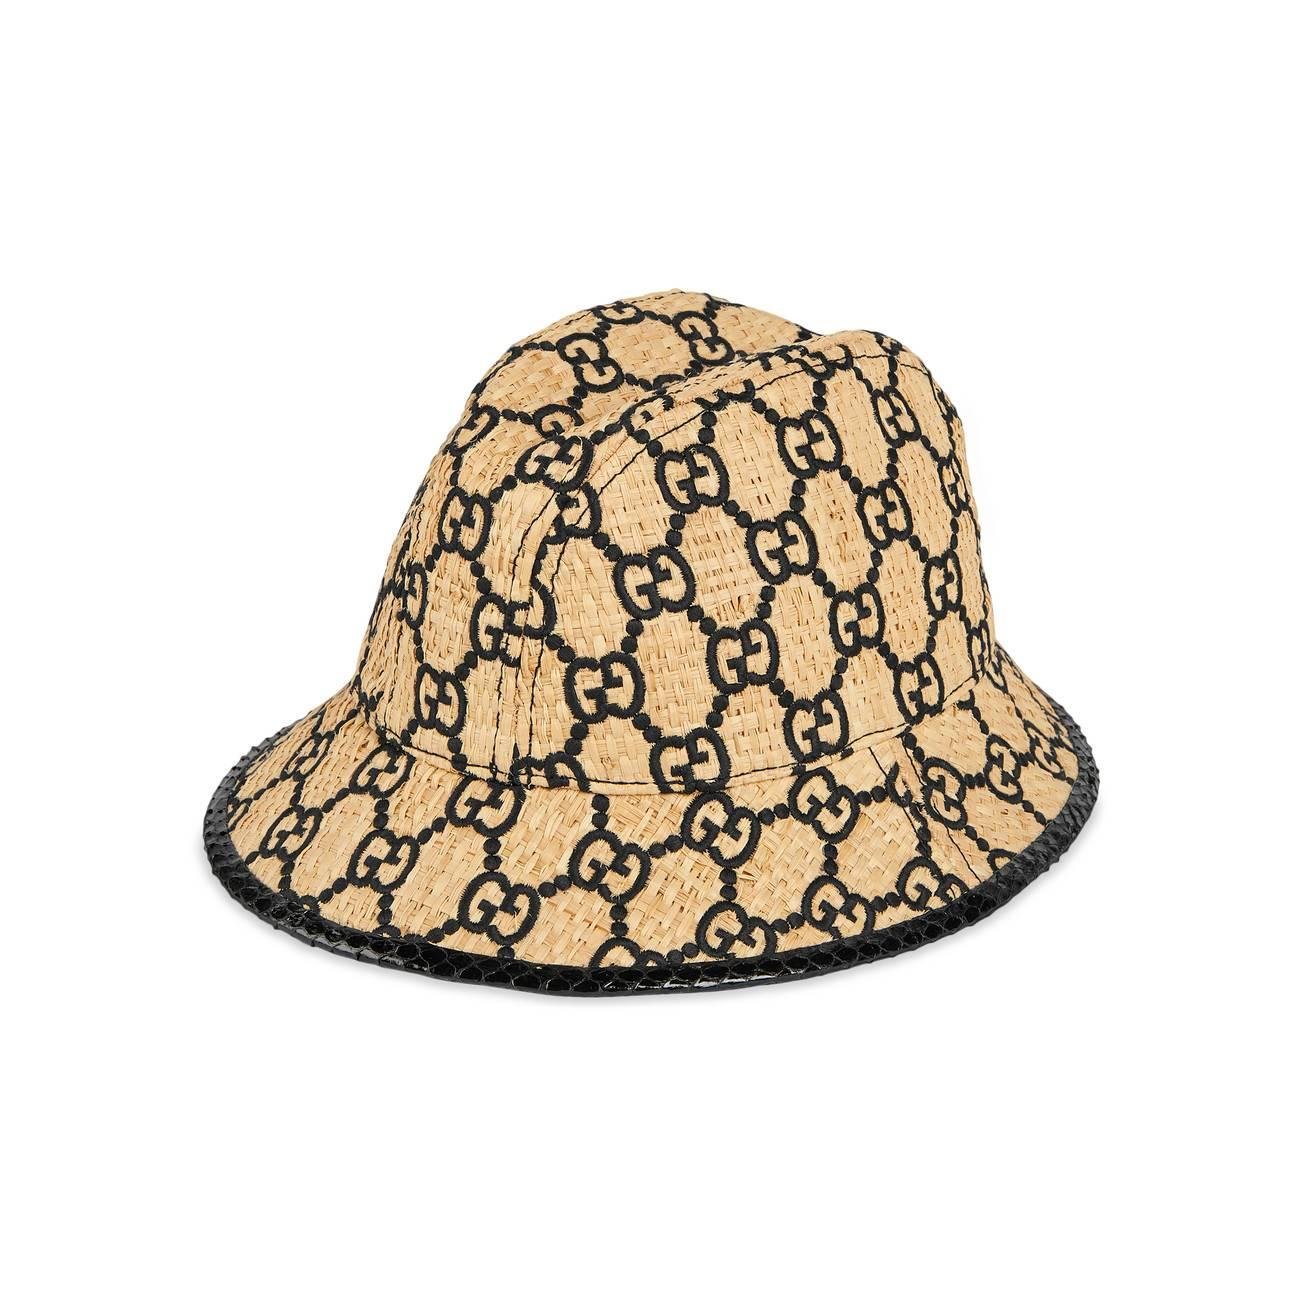 dbdd88a9 Gucci GG Fedora Hat With Snakeskin in Natural - Lyst